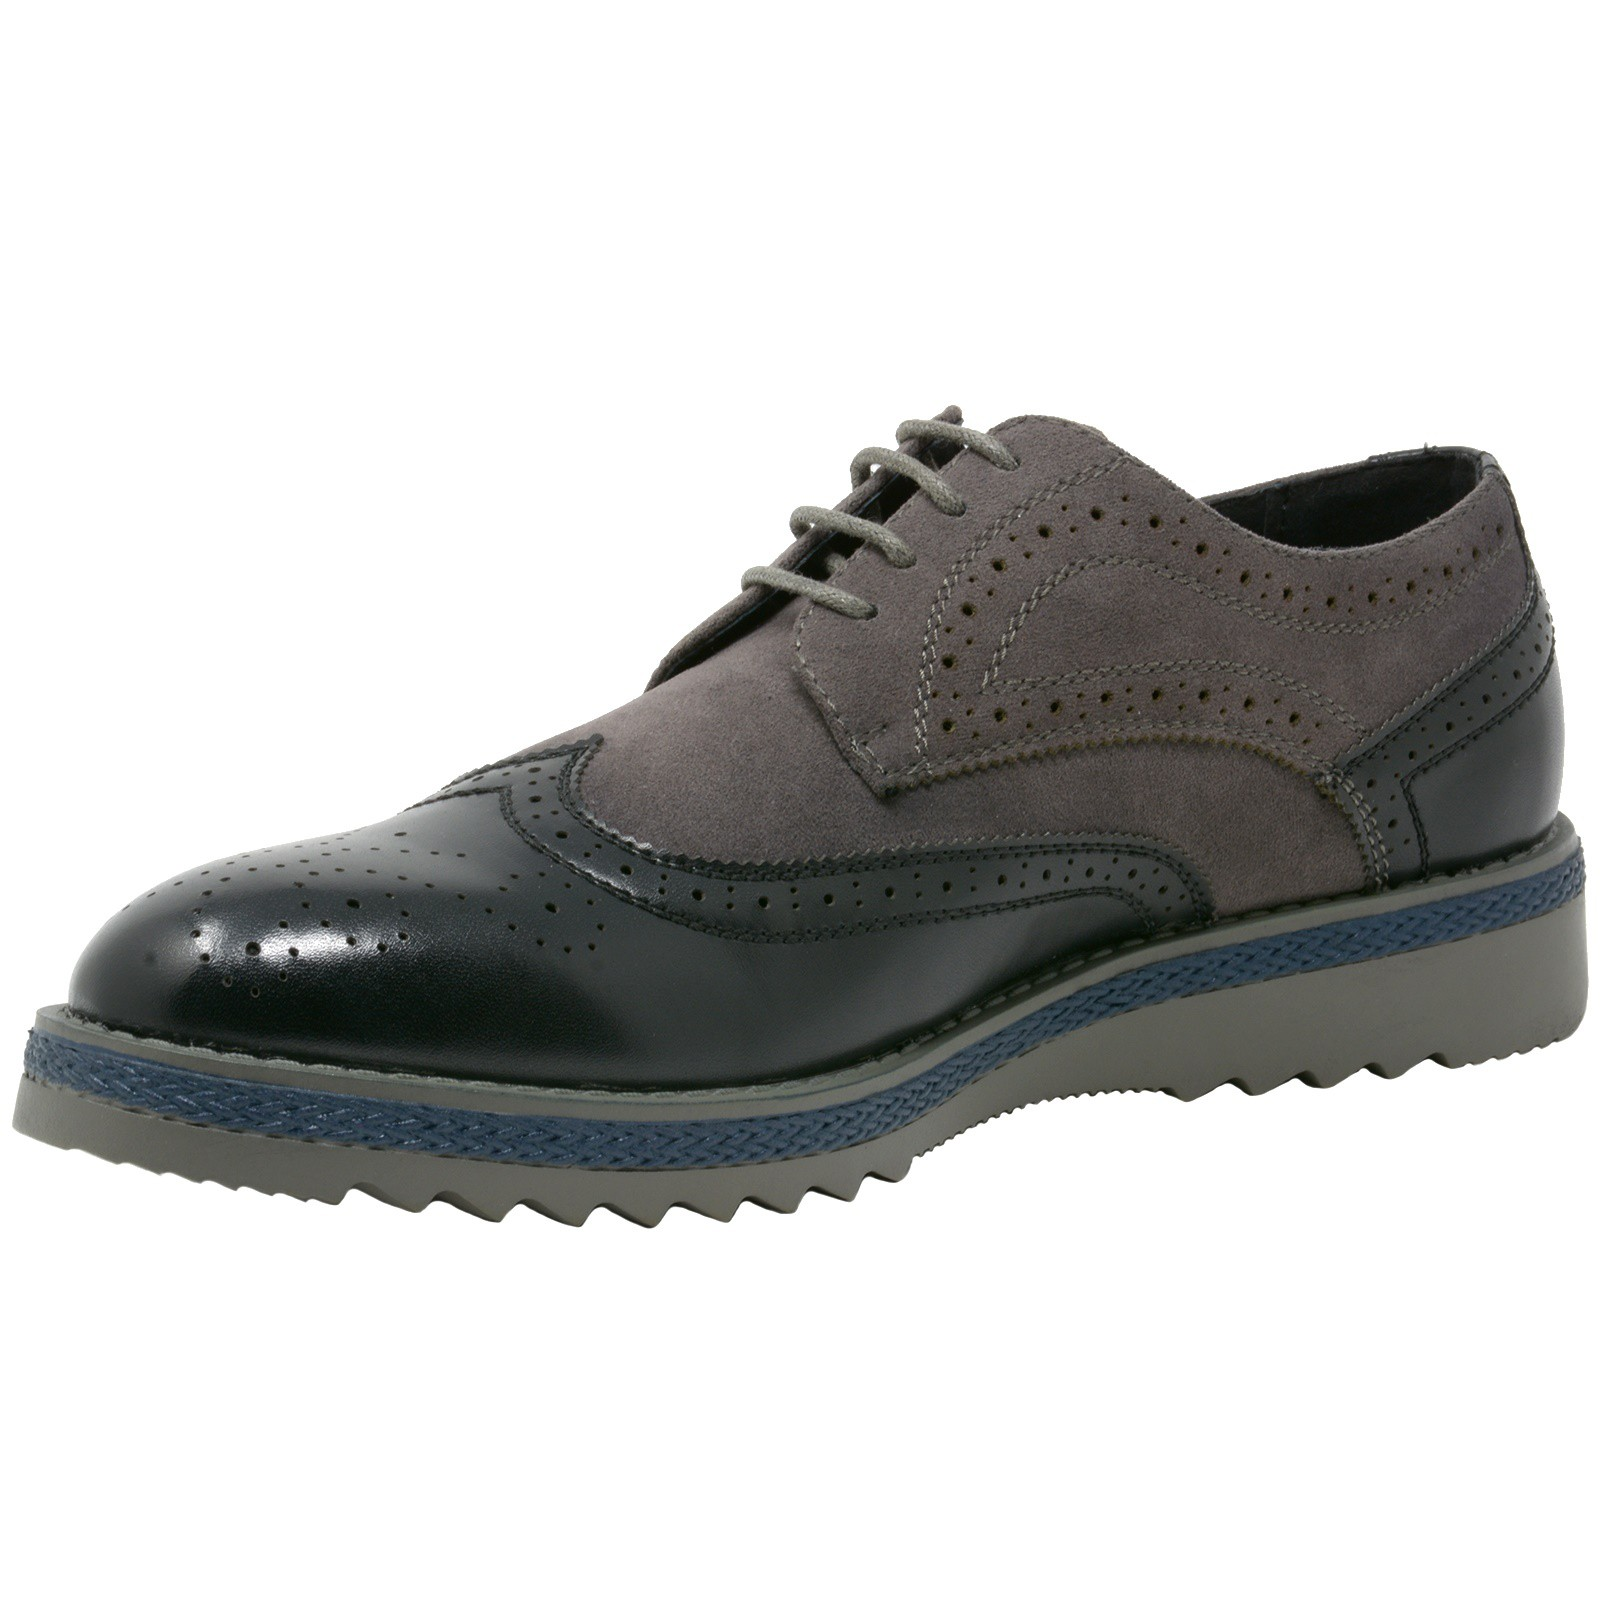 Alpine-Swiss-Alec-Mens-Wingtip-Shoes-1-5-Ripple-Sole-Leather-Insole-amp-Lining thumbnail 20